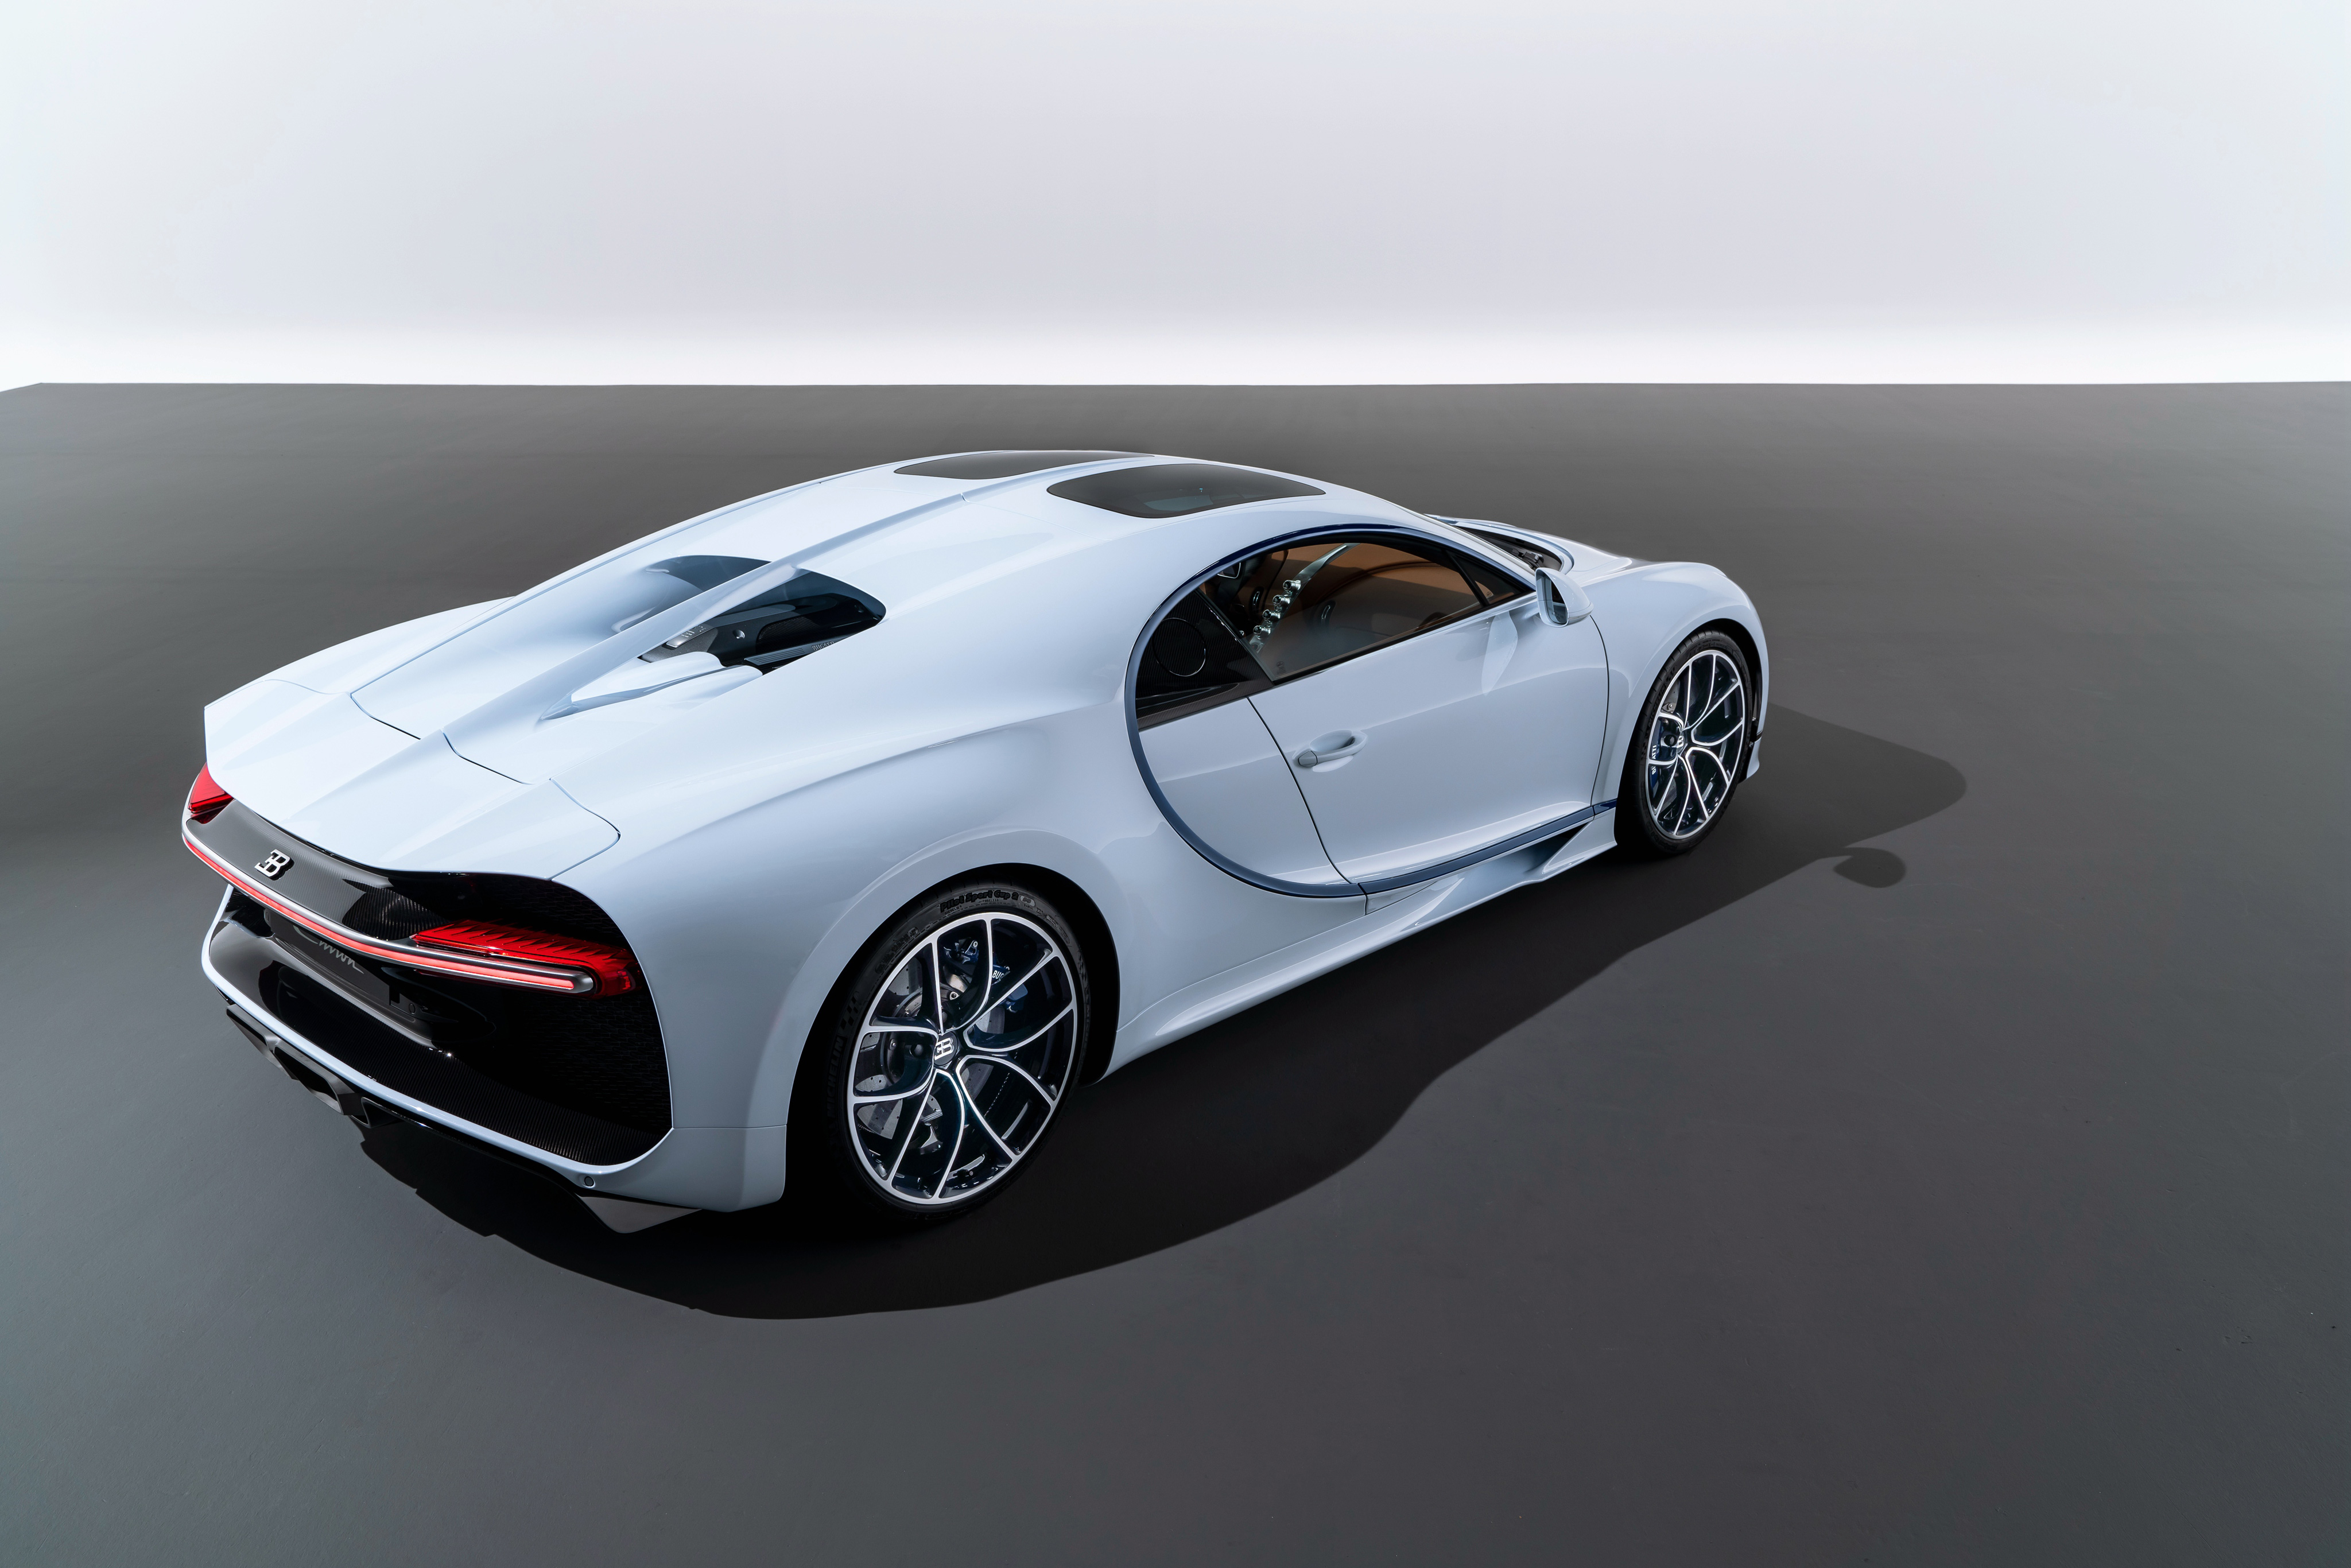 2018 Bugatti Chiron Sky View Rear 4k, HD Cars, 4k